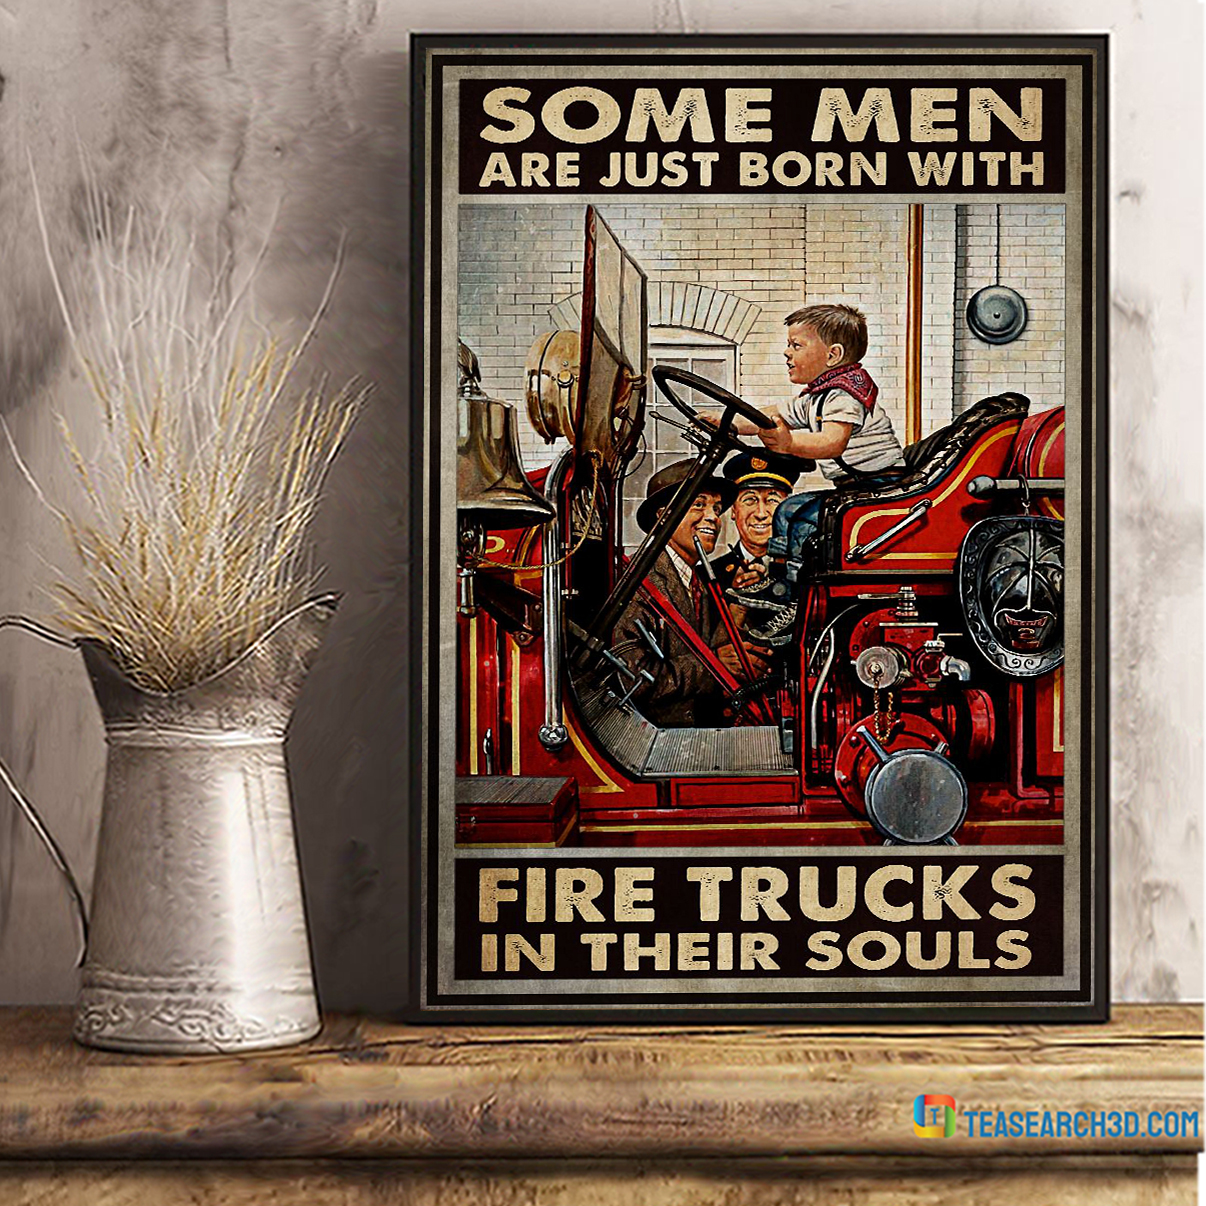 Some men are just born with fire trucks in their souls poster A2